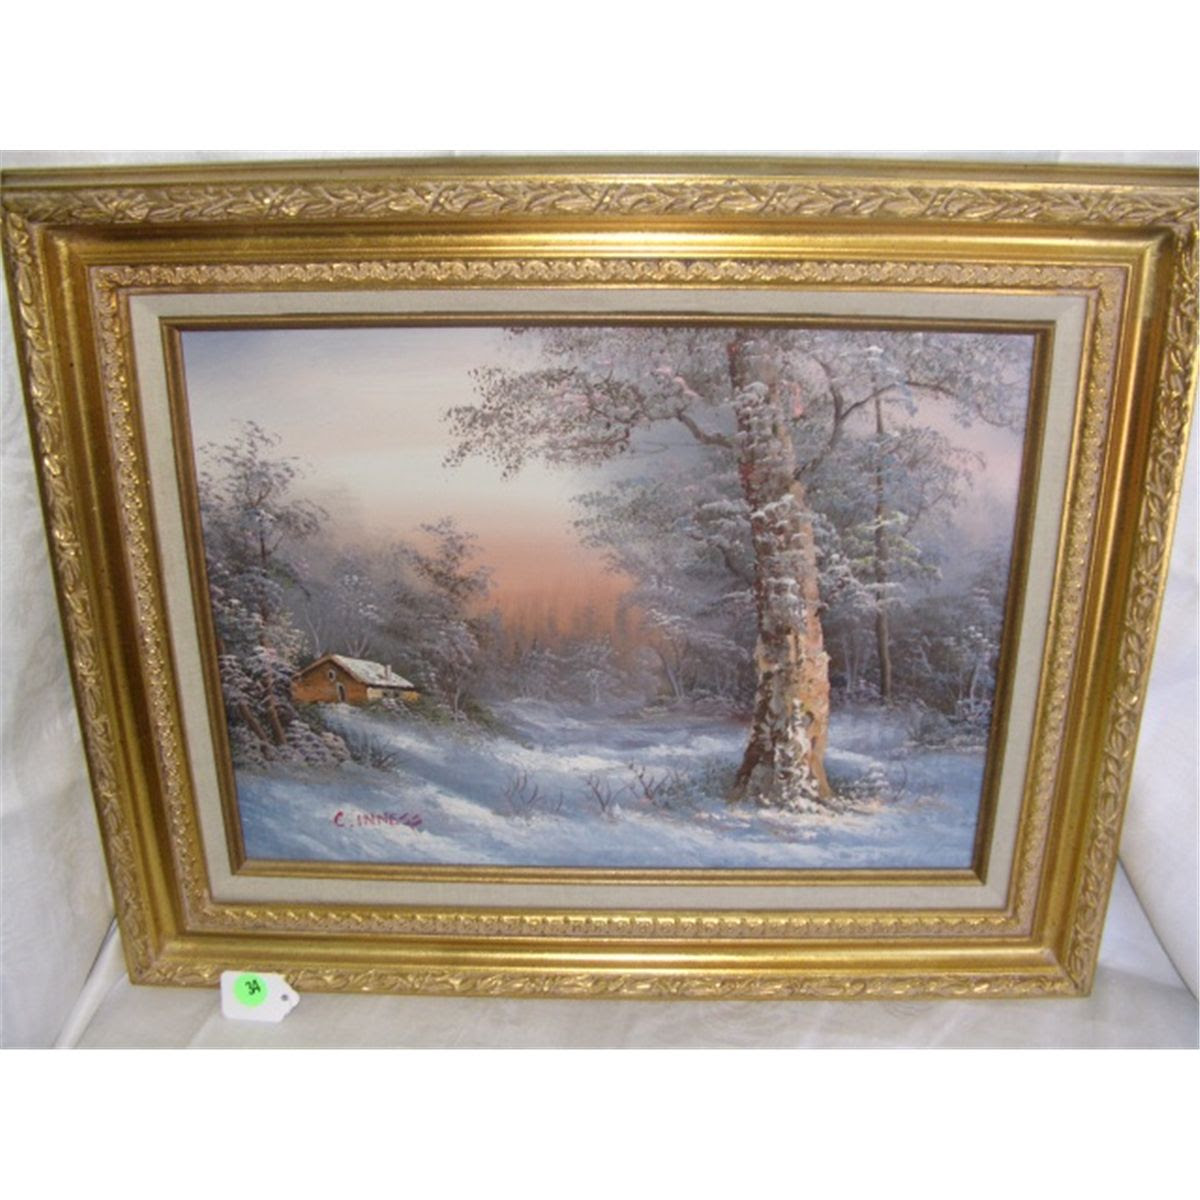 Nice Oil Painting On Canvas By C Inness Snowy Scene Cabin Frame